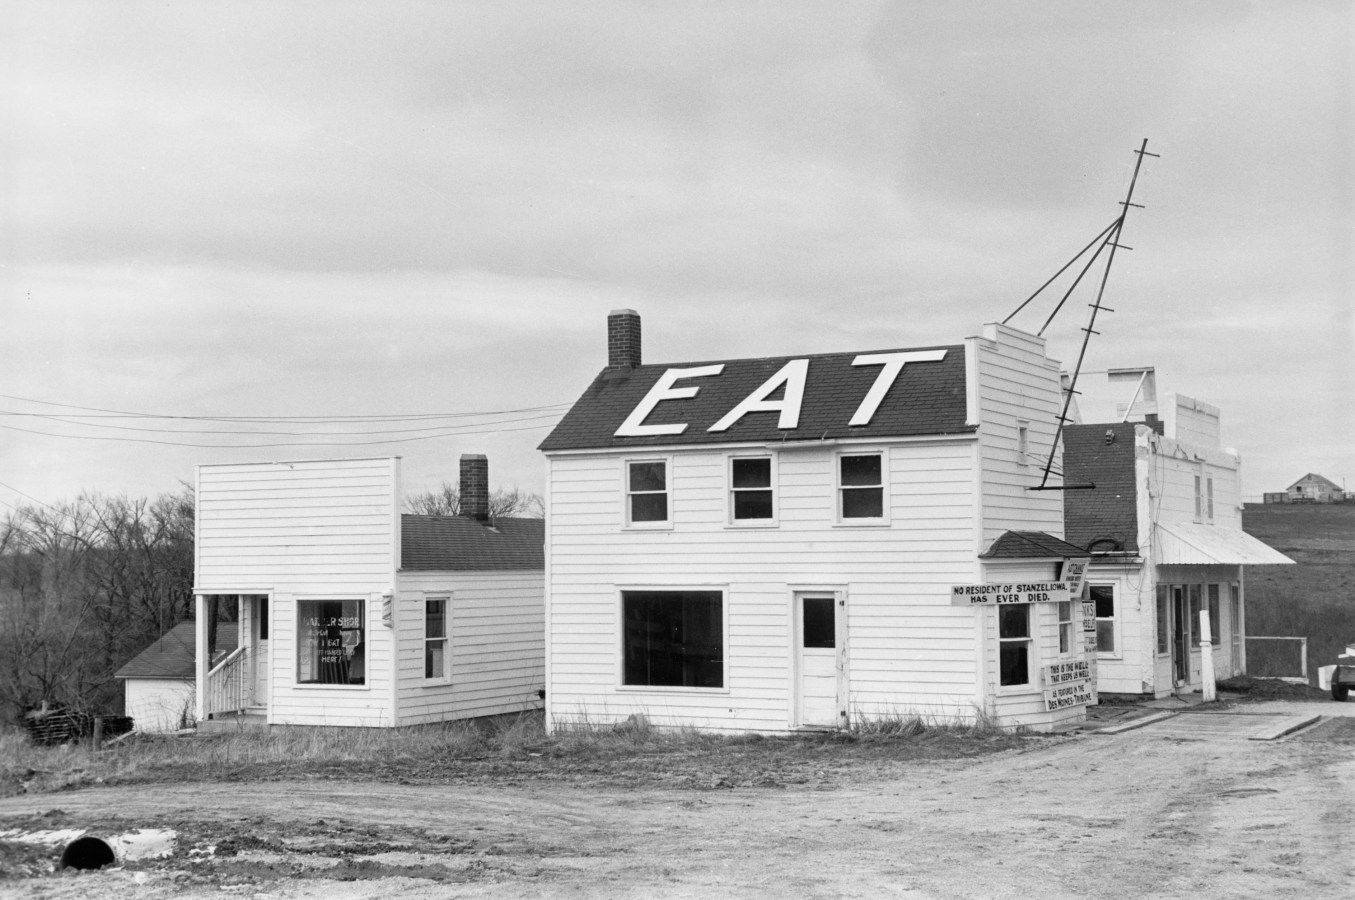 Black-and-white photograph of a rural two story building with the word 'eat' in large white letters on its roof.